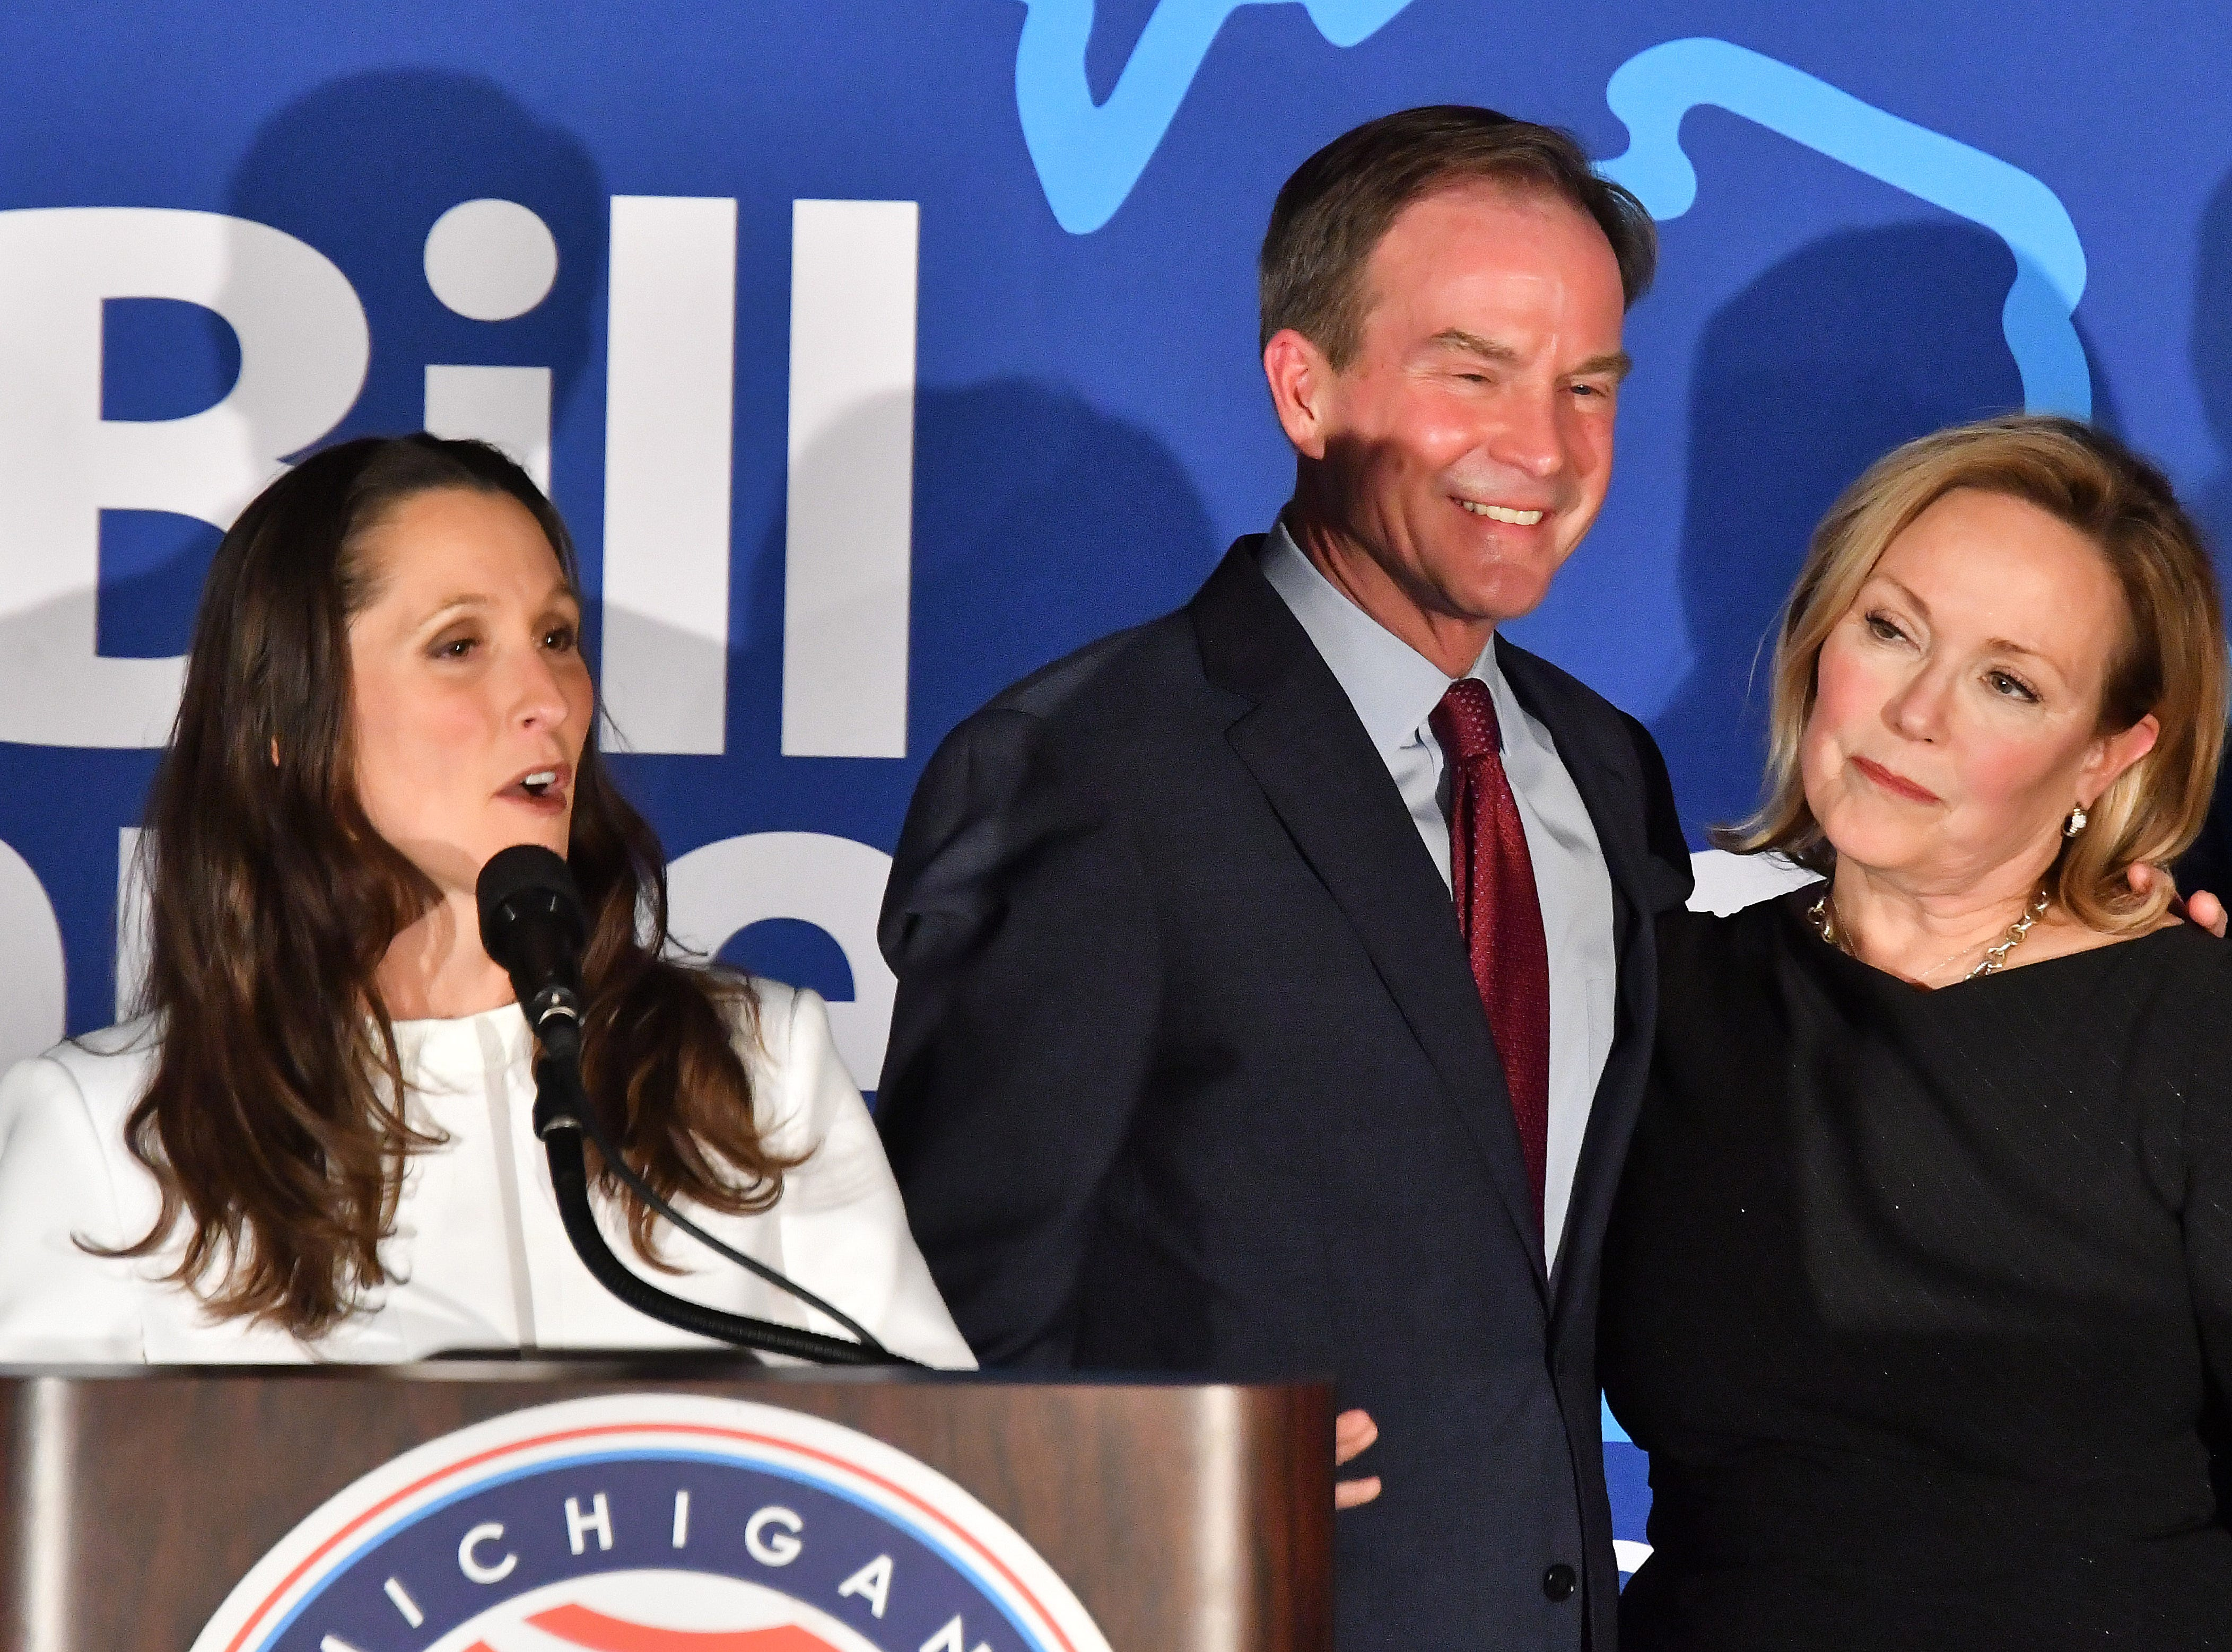 Lt. governor candidate Lisa Posthumus Lyons addresses the crowd beside running mate Bill Schuette and his wife Cynthia as the Michigan GOP gathers at the Lansing Center.